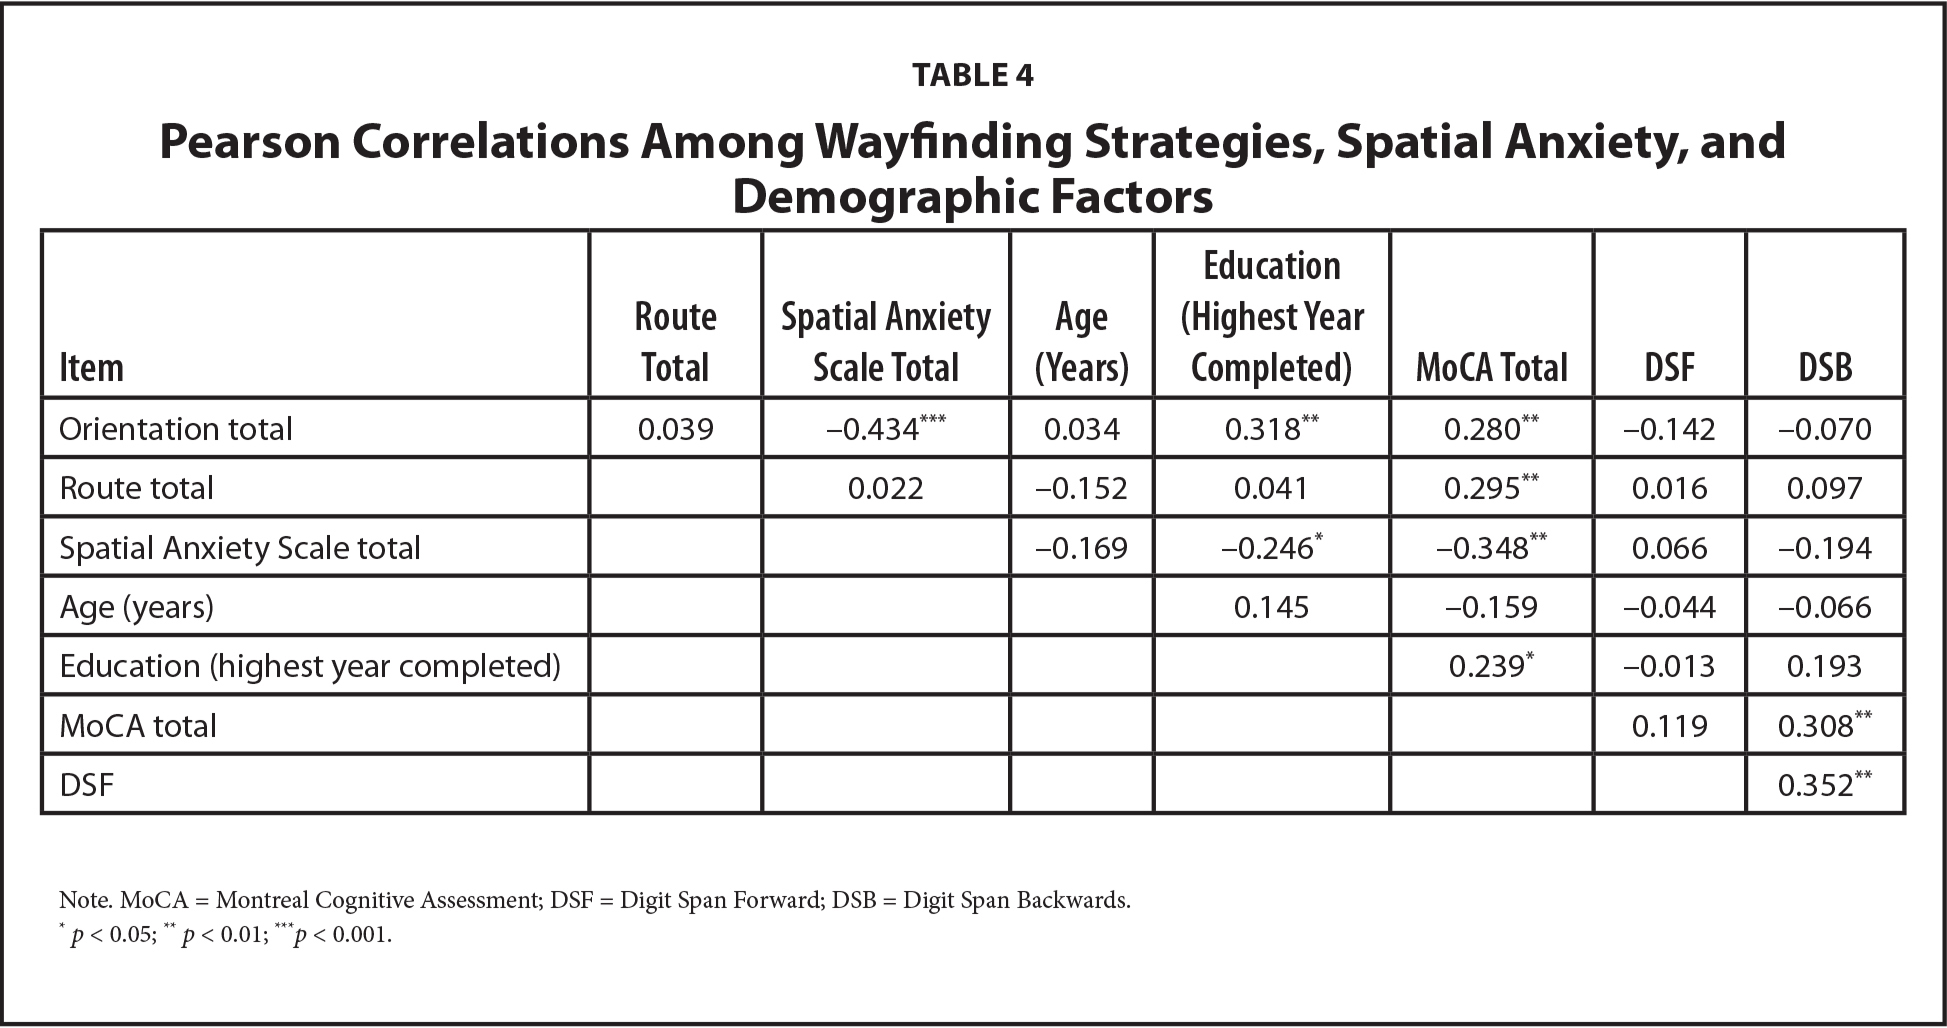 Pearson Correlations Among Wayfinding Strategies, Spatial Anxiety, and Demographic Factors